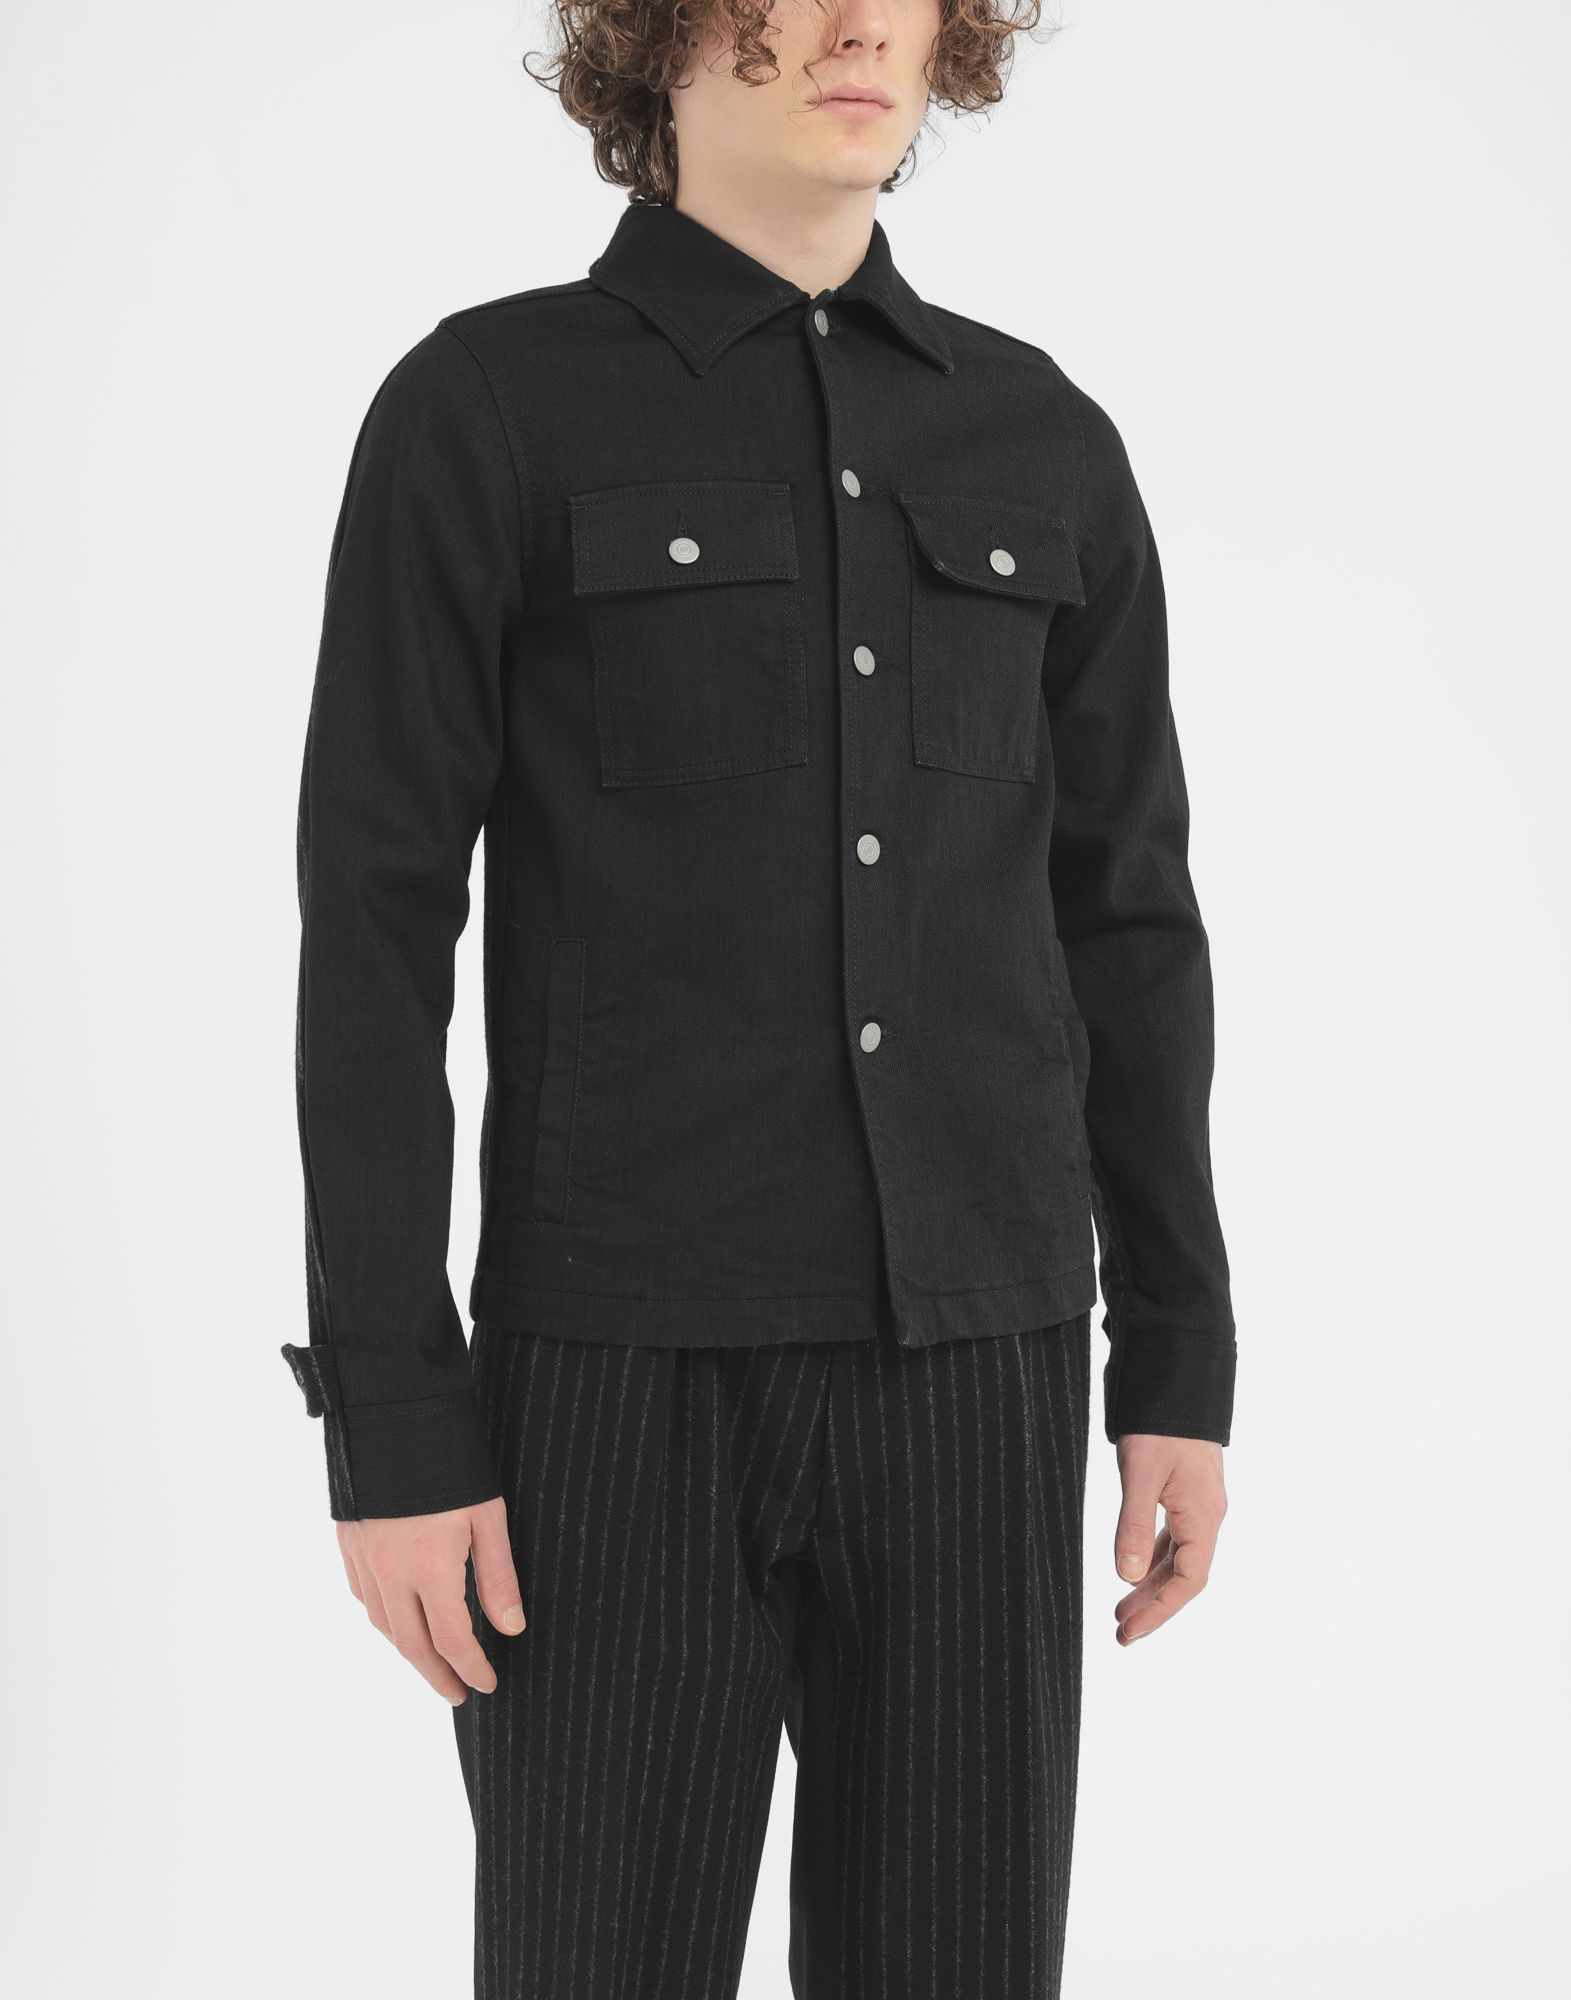 MAISON MARGIELA Spliced jacket Blazer Man r